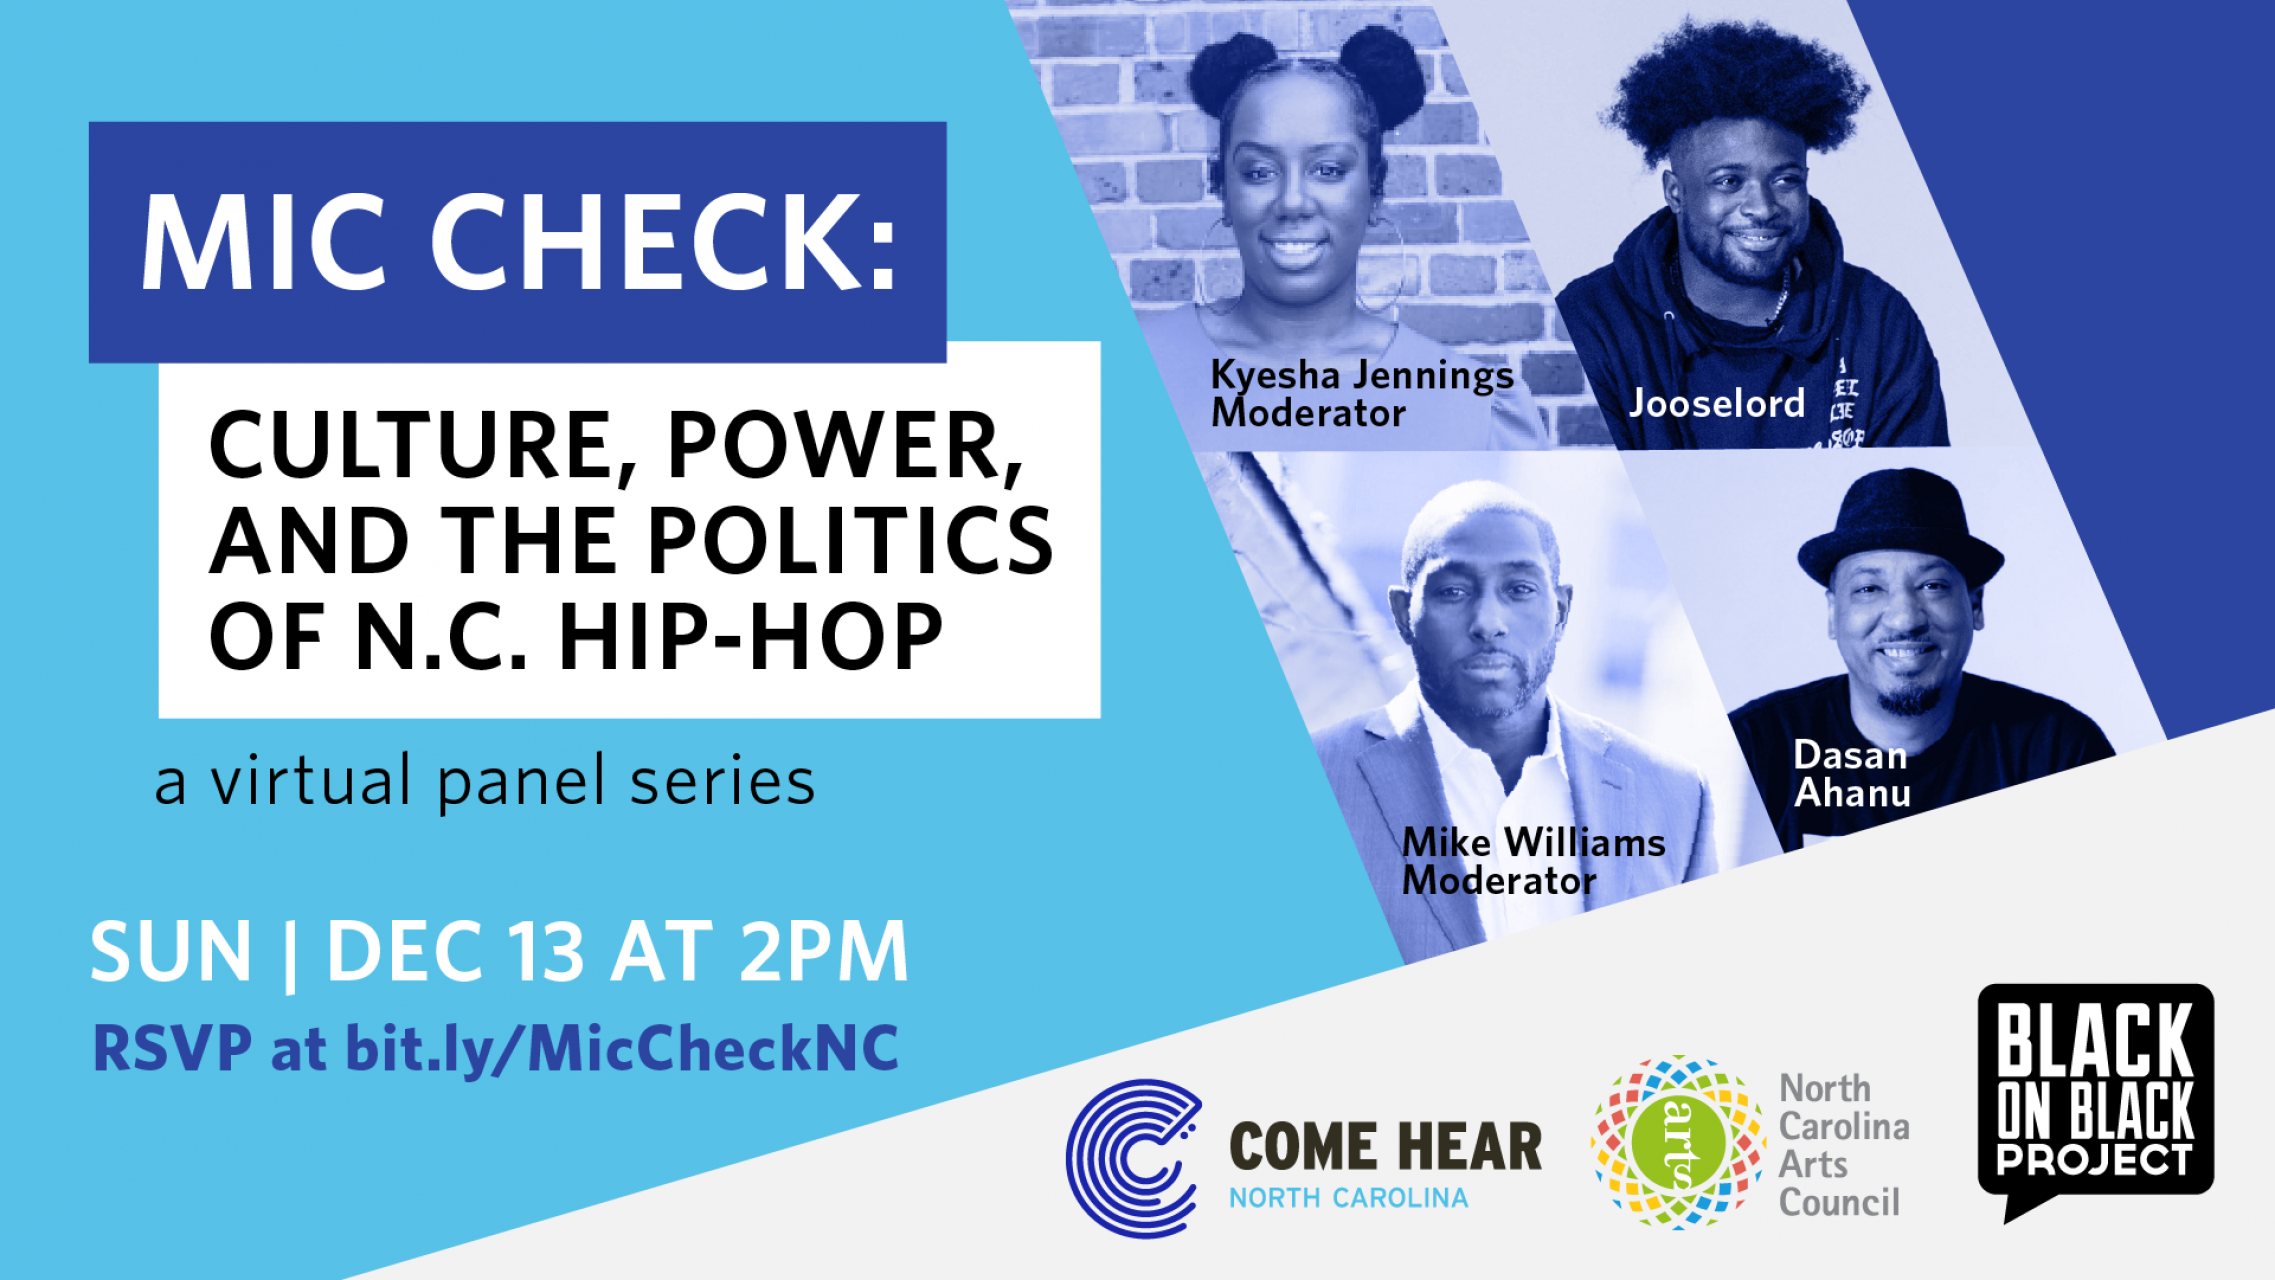 Graphic with images and names of hip-hop artists: Dasan Ahanu and Jooselord, and images and names of Kyesha Jennings and Mike Williams, captioned moderator.   Name of event: Mic Check: Culture, Power, and Politics of N.C. Hip Hop December 13